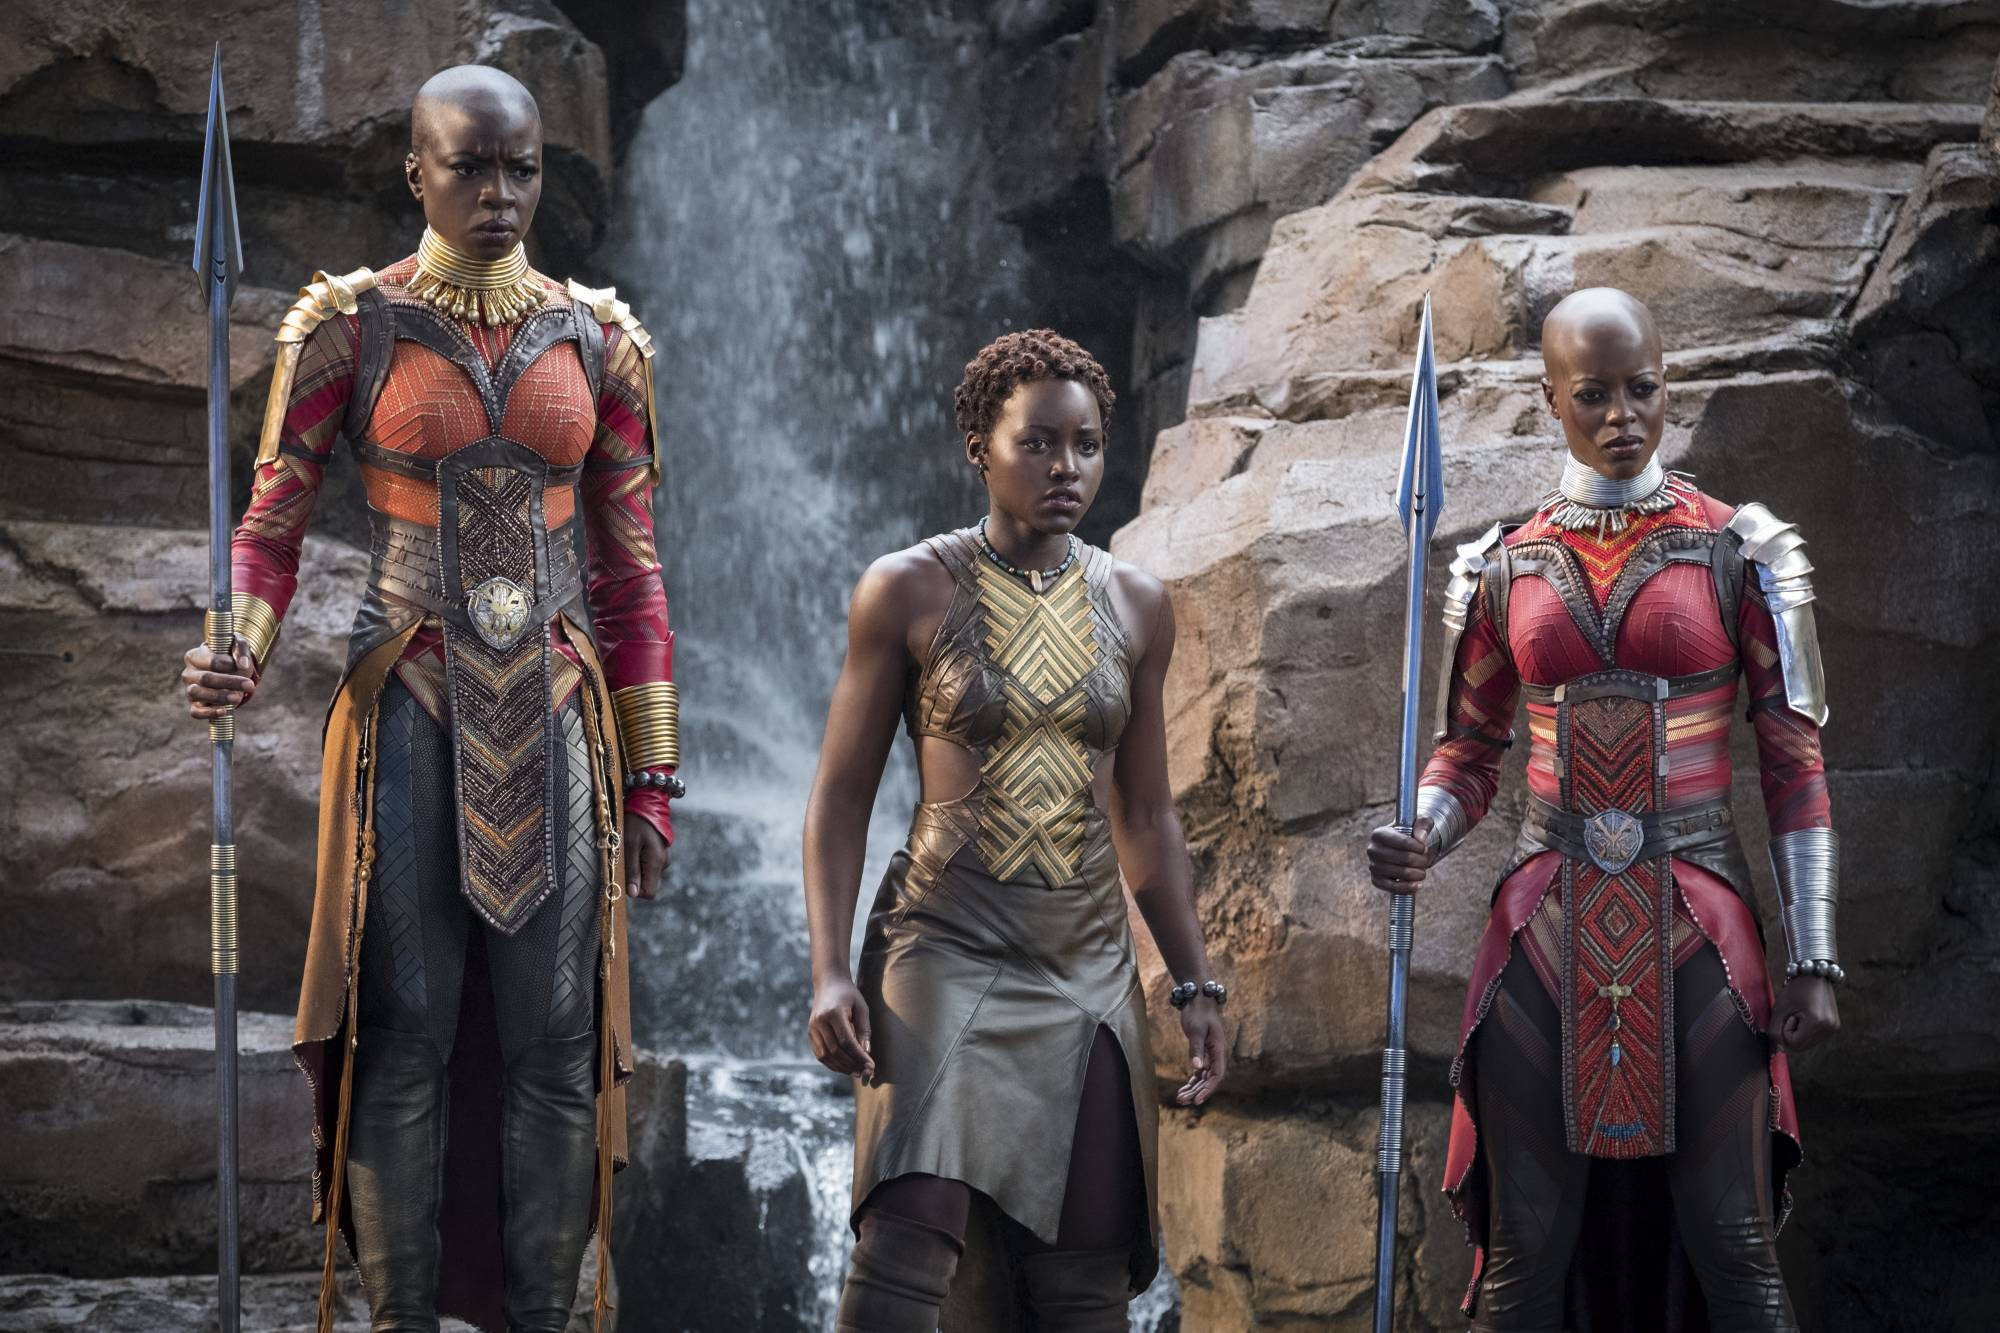 panther single women A troll instagram page then posted memes about boycotting black panther, which created a frenzy of social media posts blasting black women for boycotting the film because of jordan's love.